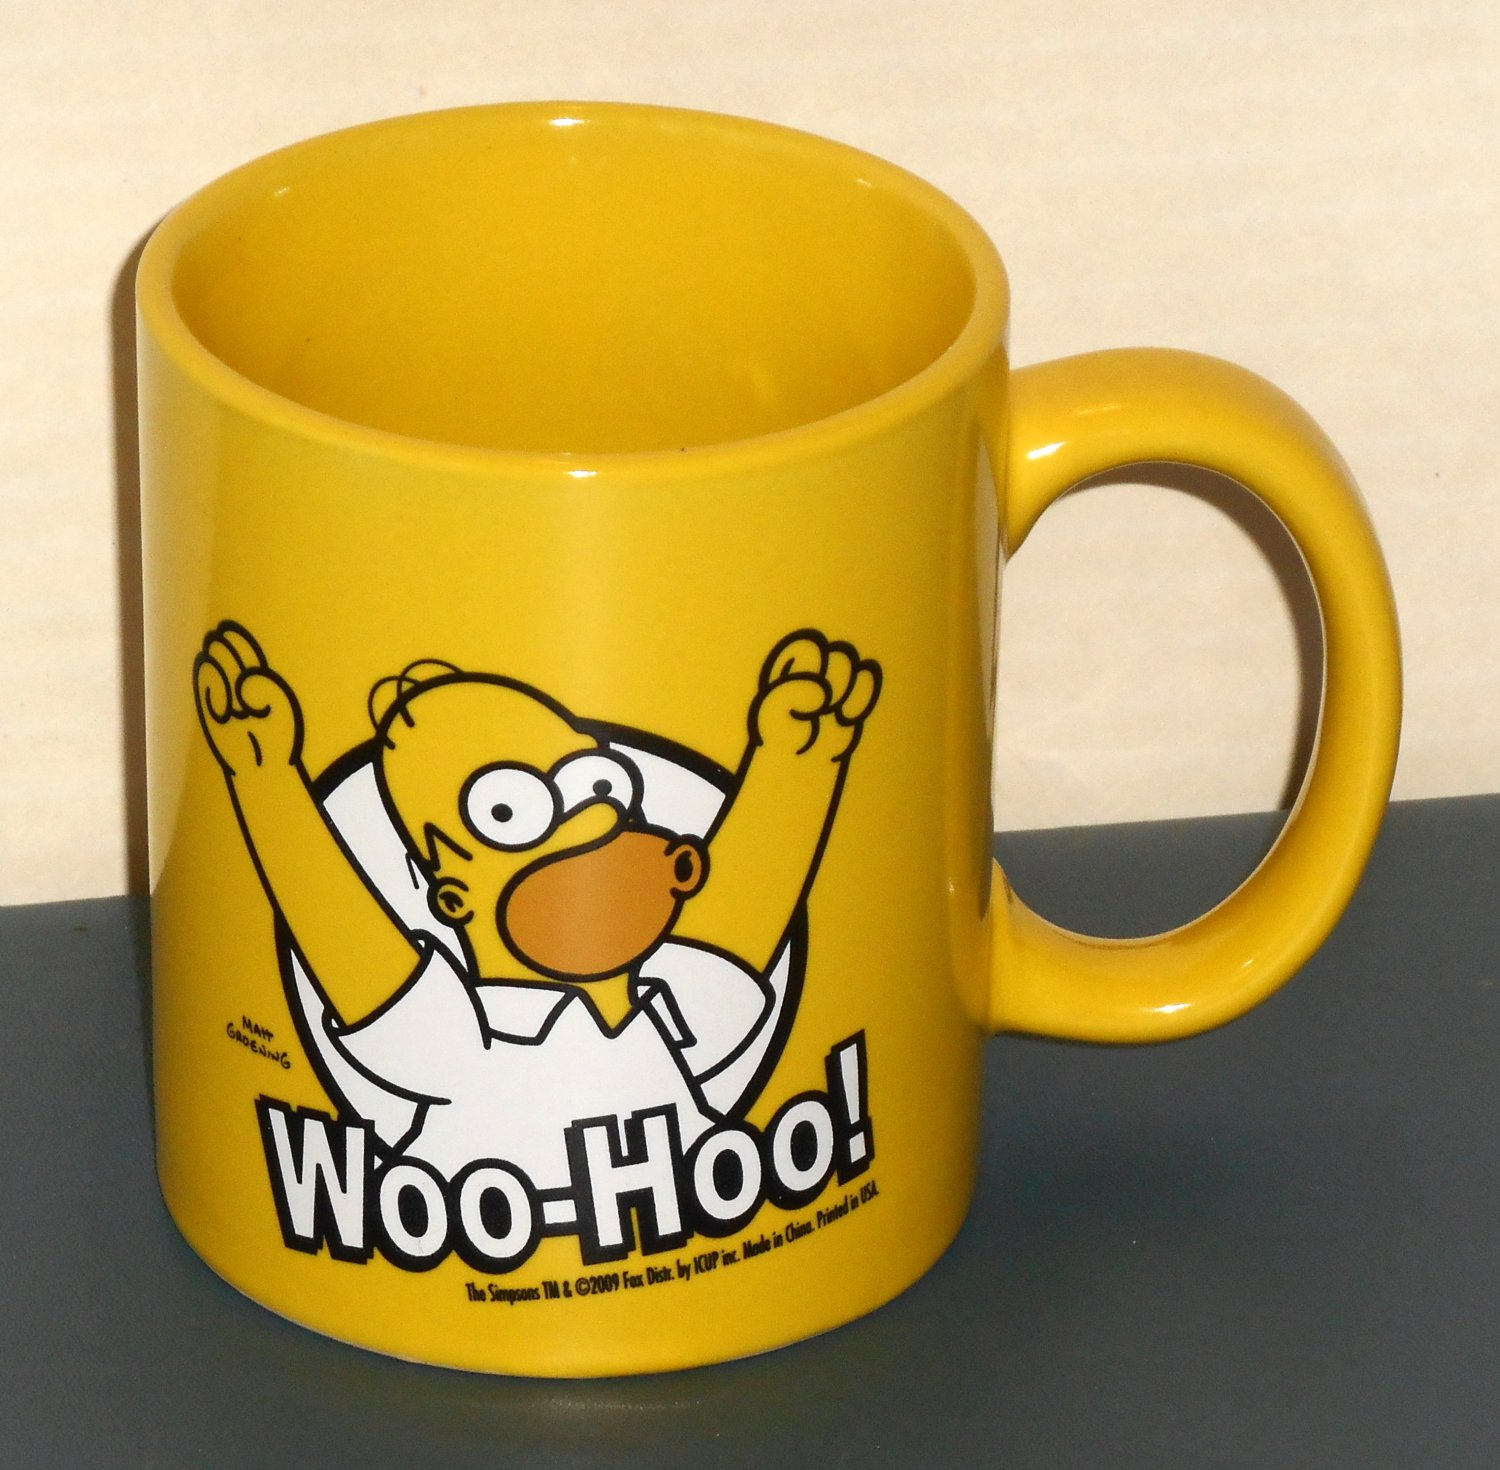 SOLD OUT Homer Simpson Woo Hoo Ceramic Yellow Coffee Mug Cup Homer The Simpsons Fox TV